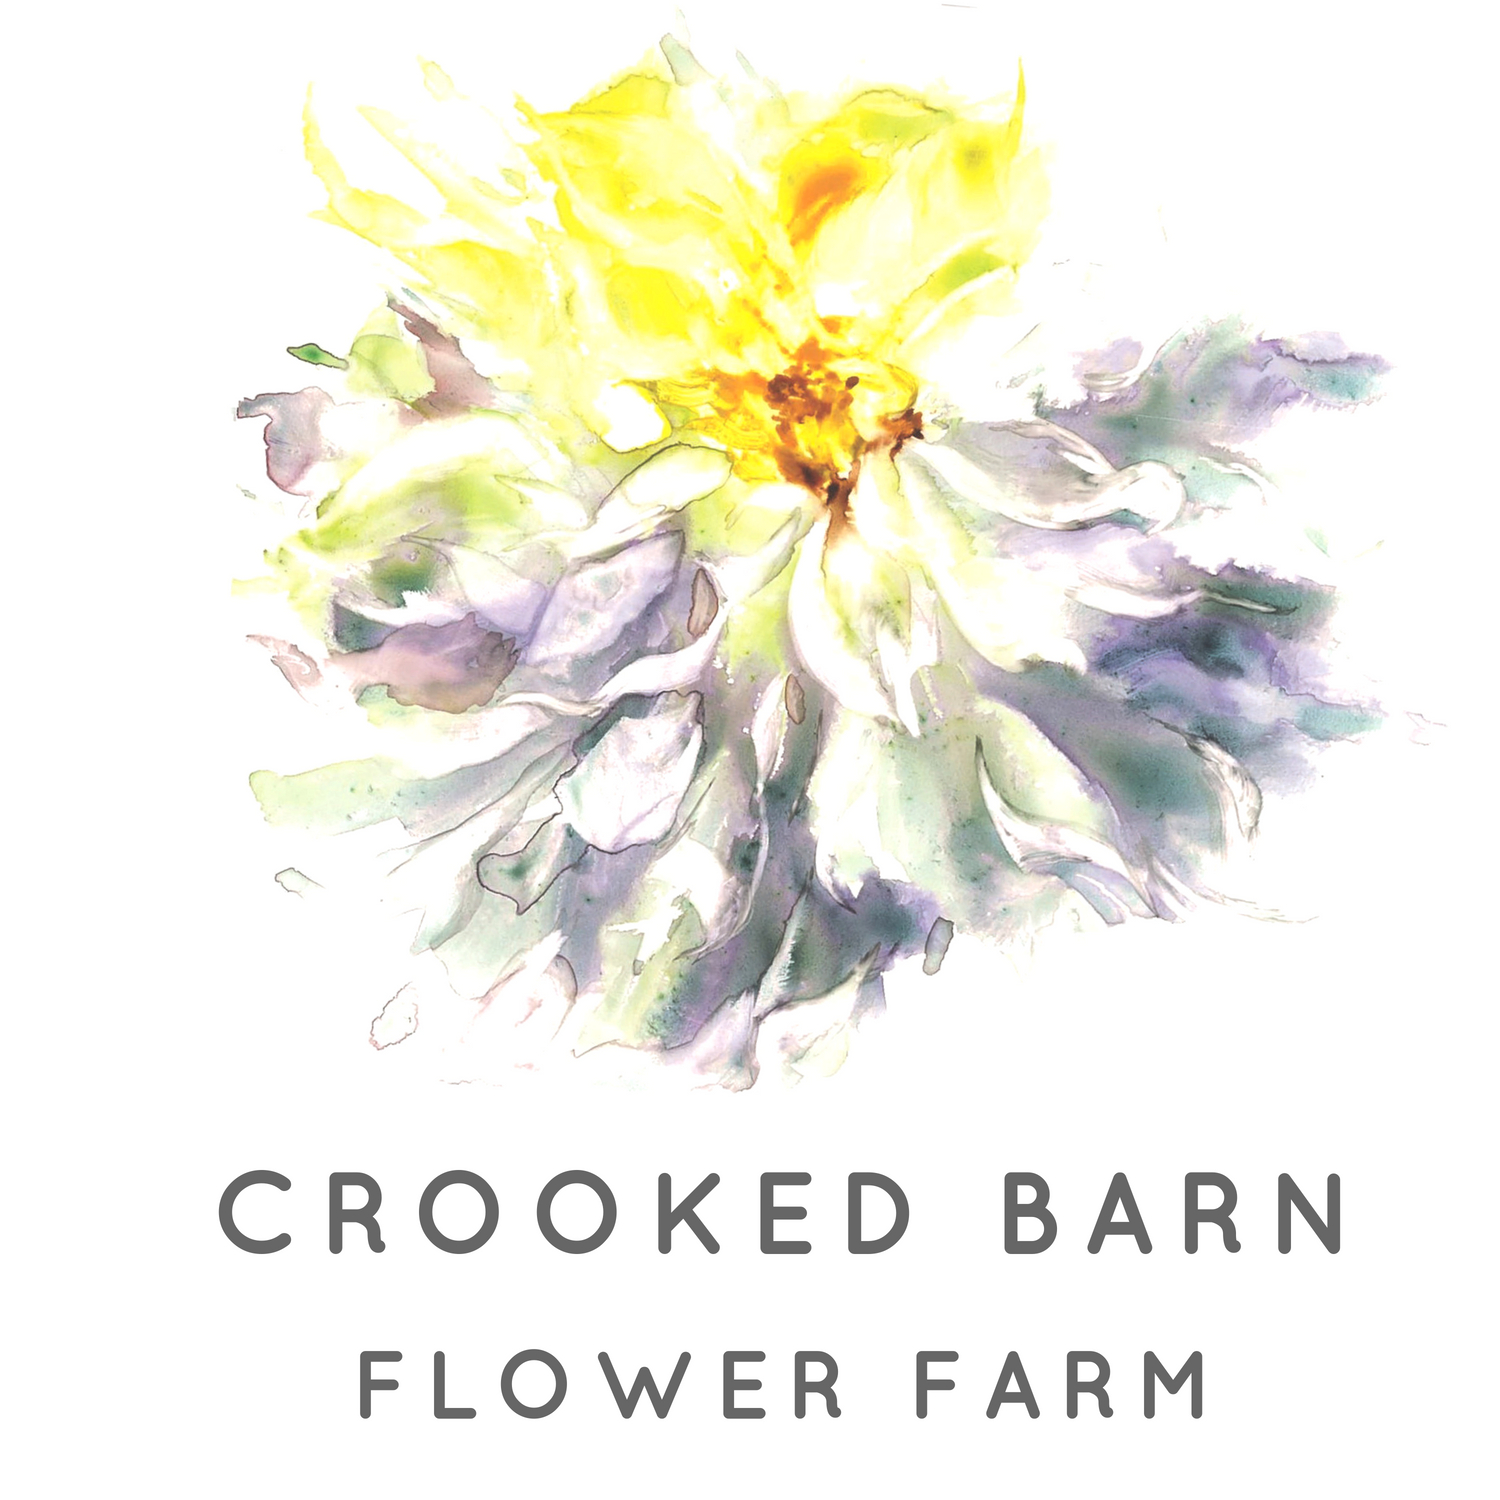 Crooked Barn Flower Farm